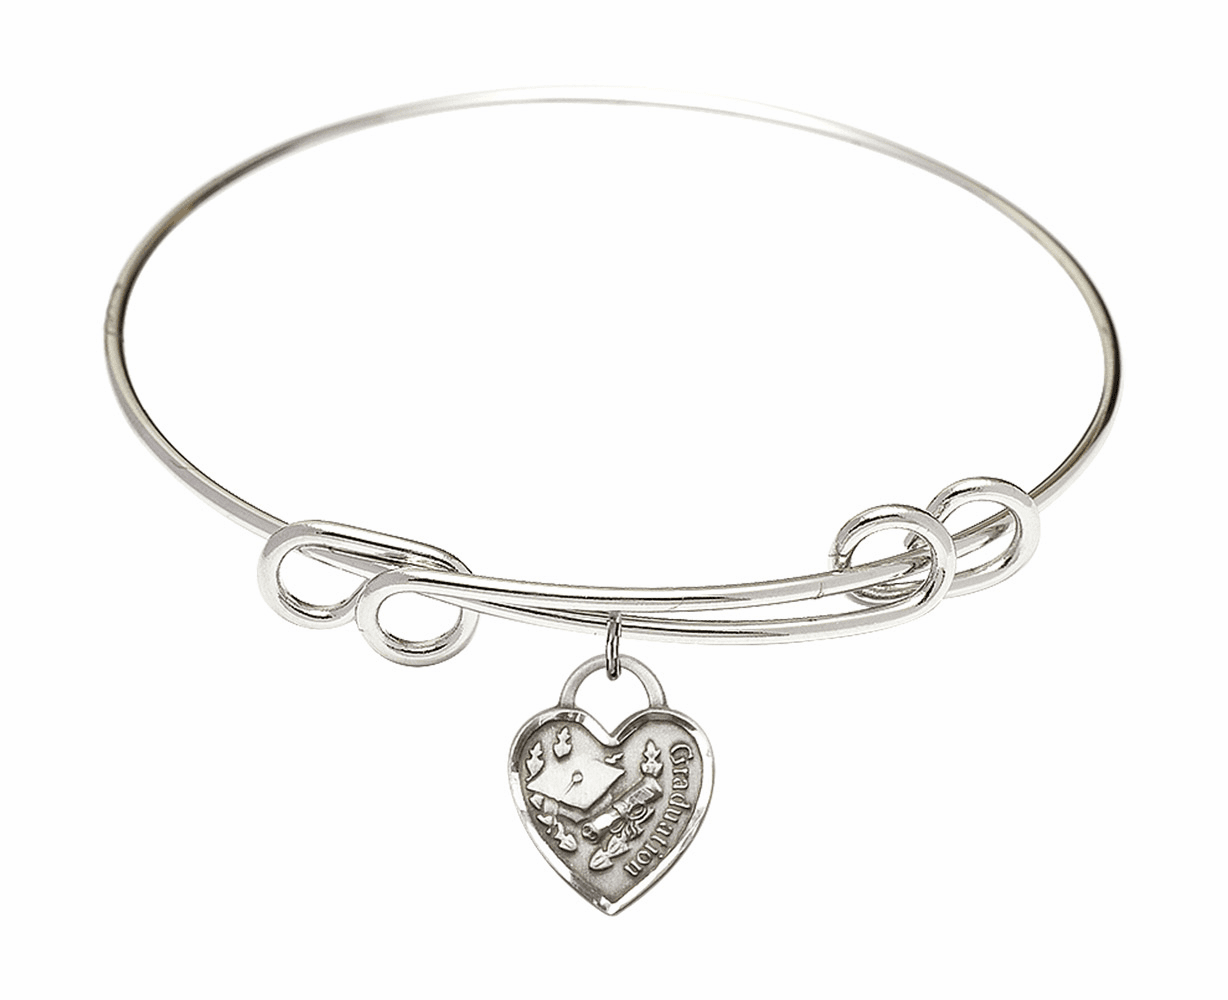 Round Double Loop Bangle Bracelet w/Graduation Heart Sterling Silver Charm by Bliss Mfg